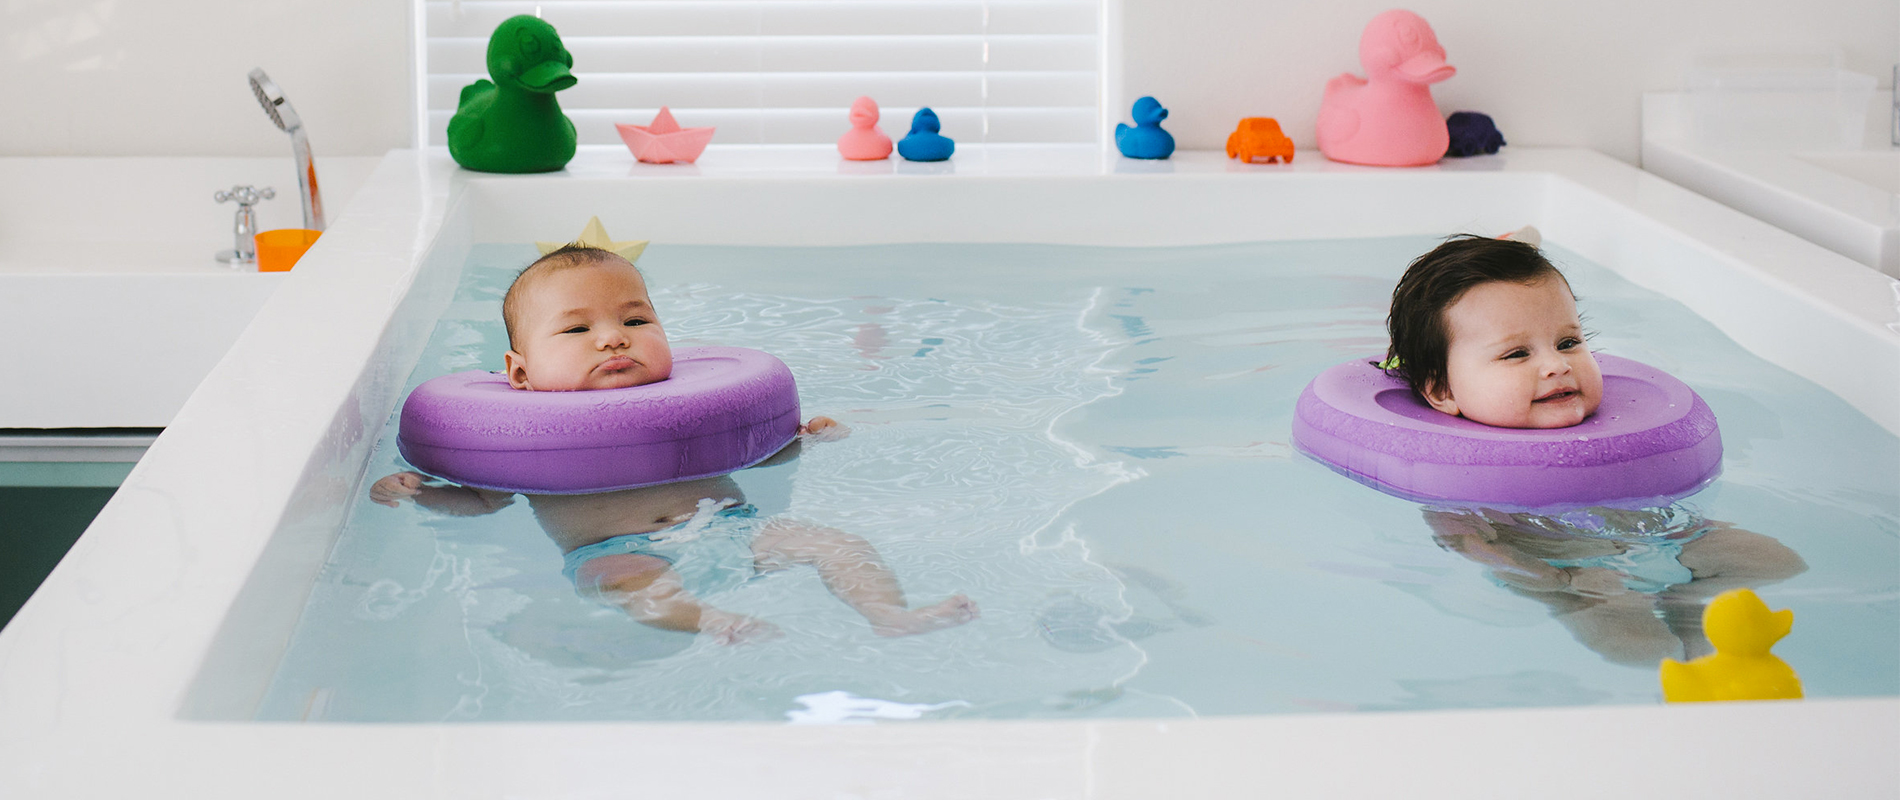 Baby Spa Perth, An Exclusive Infant Spa